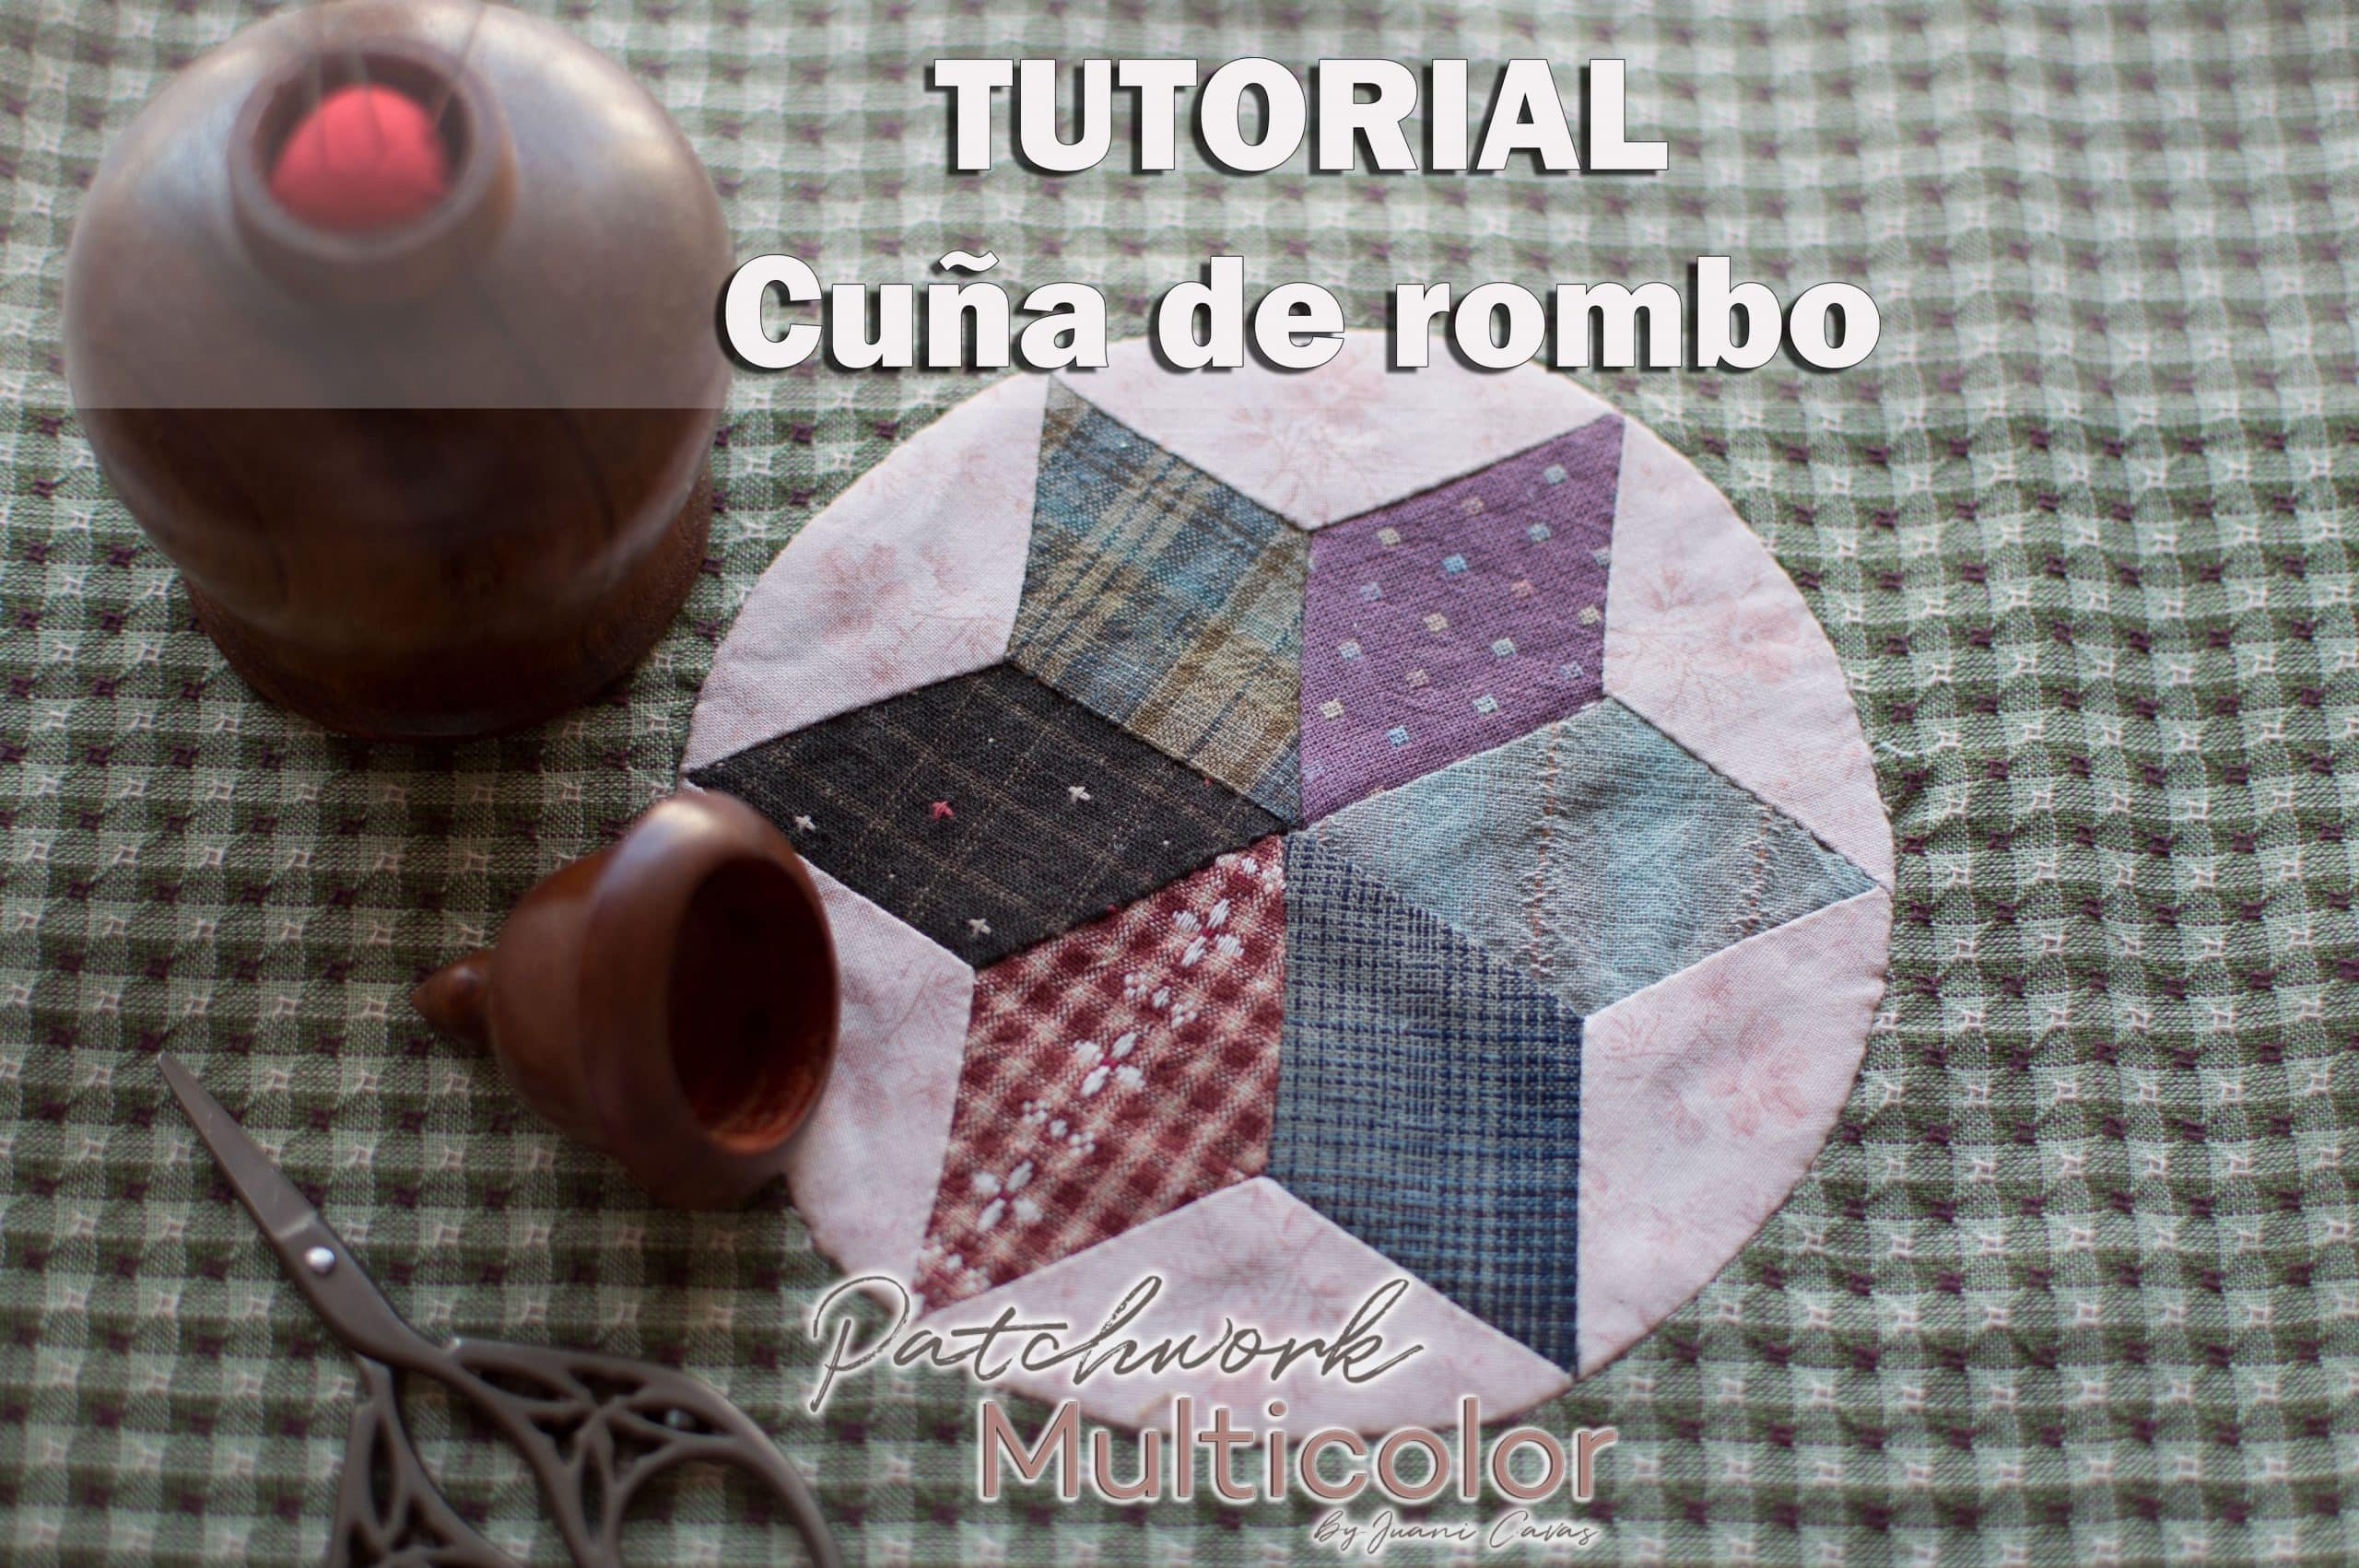 Tutorial Cuña de rombo de seis puntas six wedge edge circle